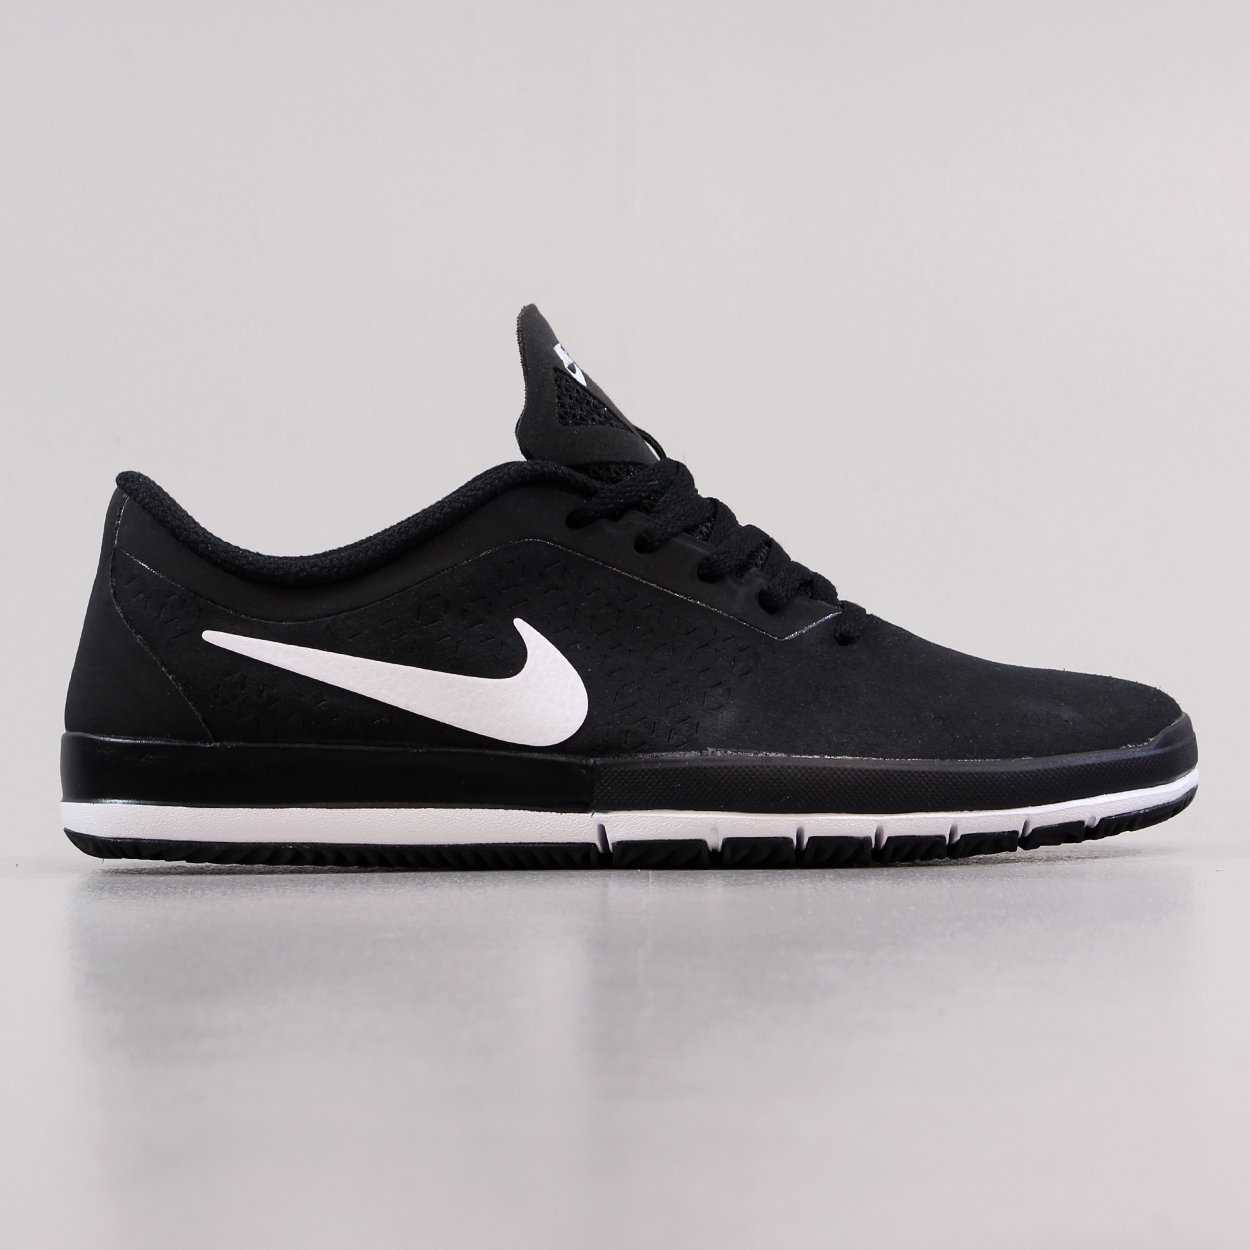 latest discount uk availability low cost Nike Mens Free SB Nano Shoes Black White Skateboarding ...